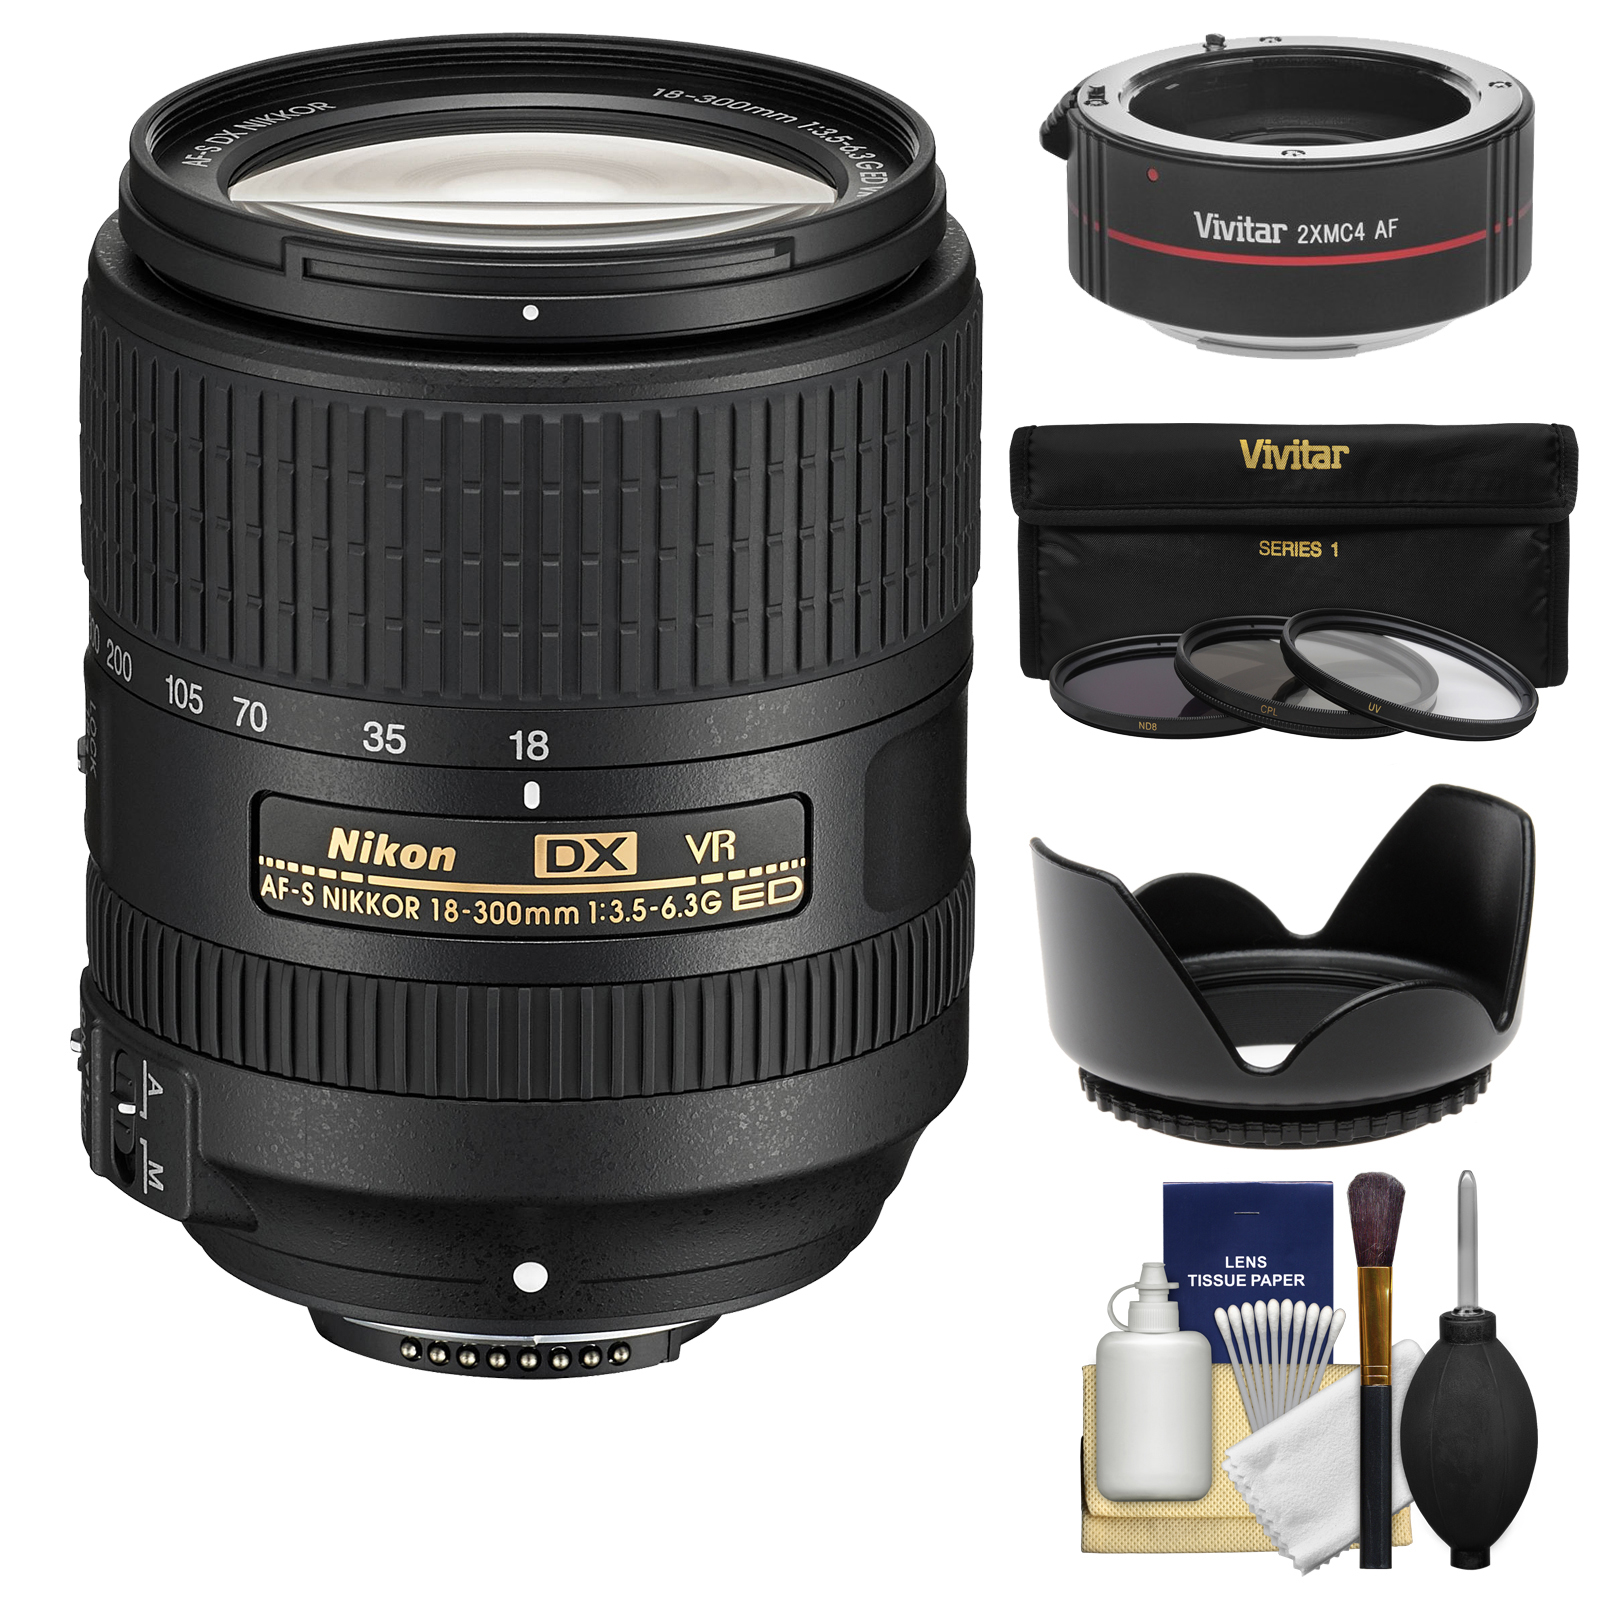 Nikon 18-300mm f/3.5-6.3G VR DX ED AF-S Nikkor-Zoom Lens & 2x Teleconverter + 3 Filters + Hood Kit for D3200, D3300, D5300, D5500, D7100, D7200 Camera